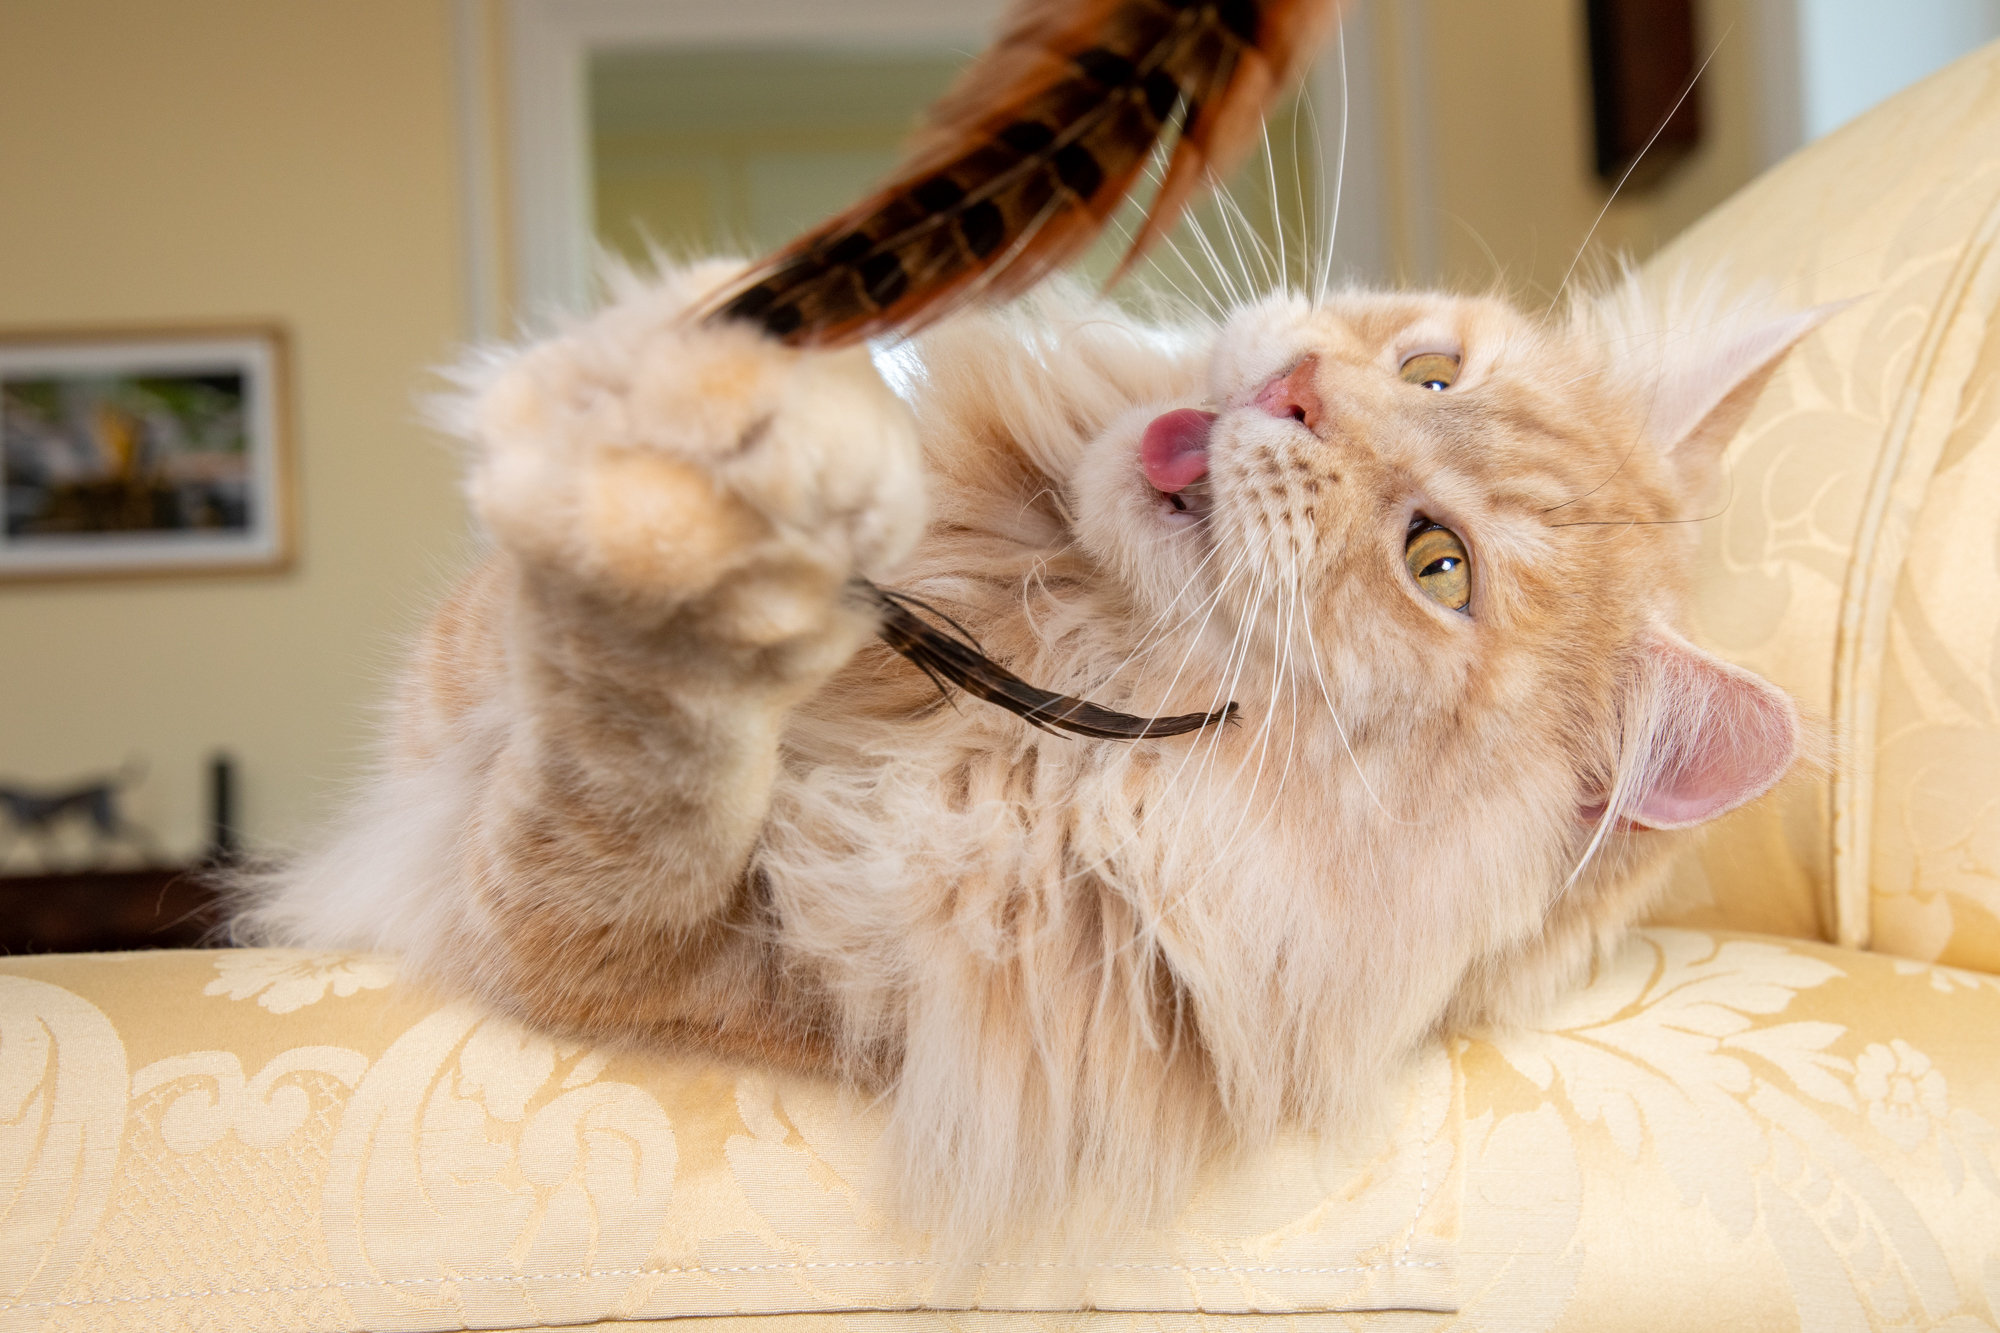 Mark Rogers photographs a very fully light tan cat playing with a feather with its tongue out for Healthy Paws Pet Insurance